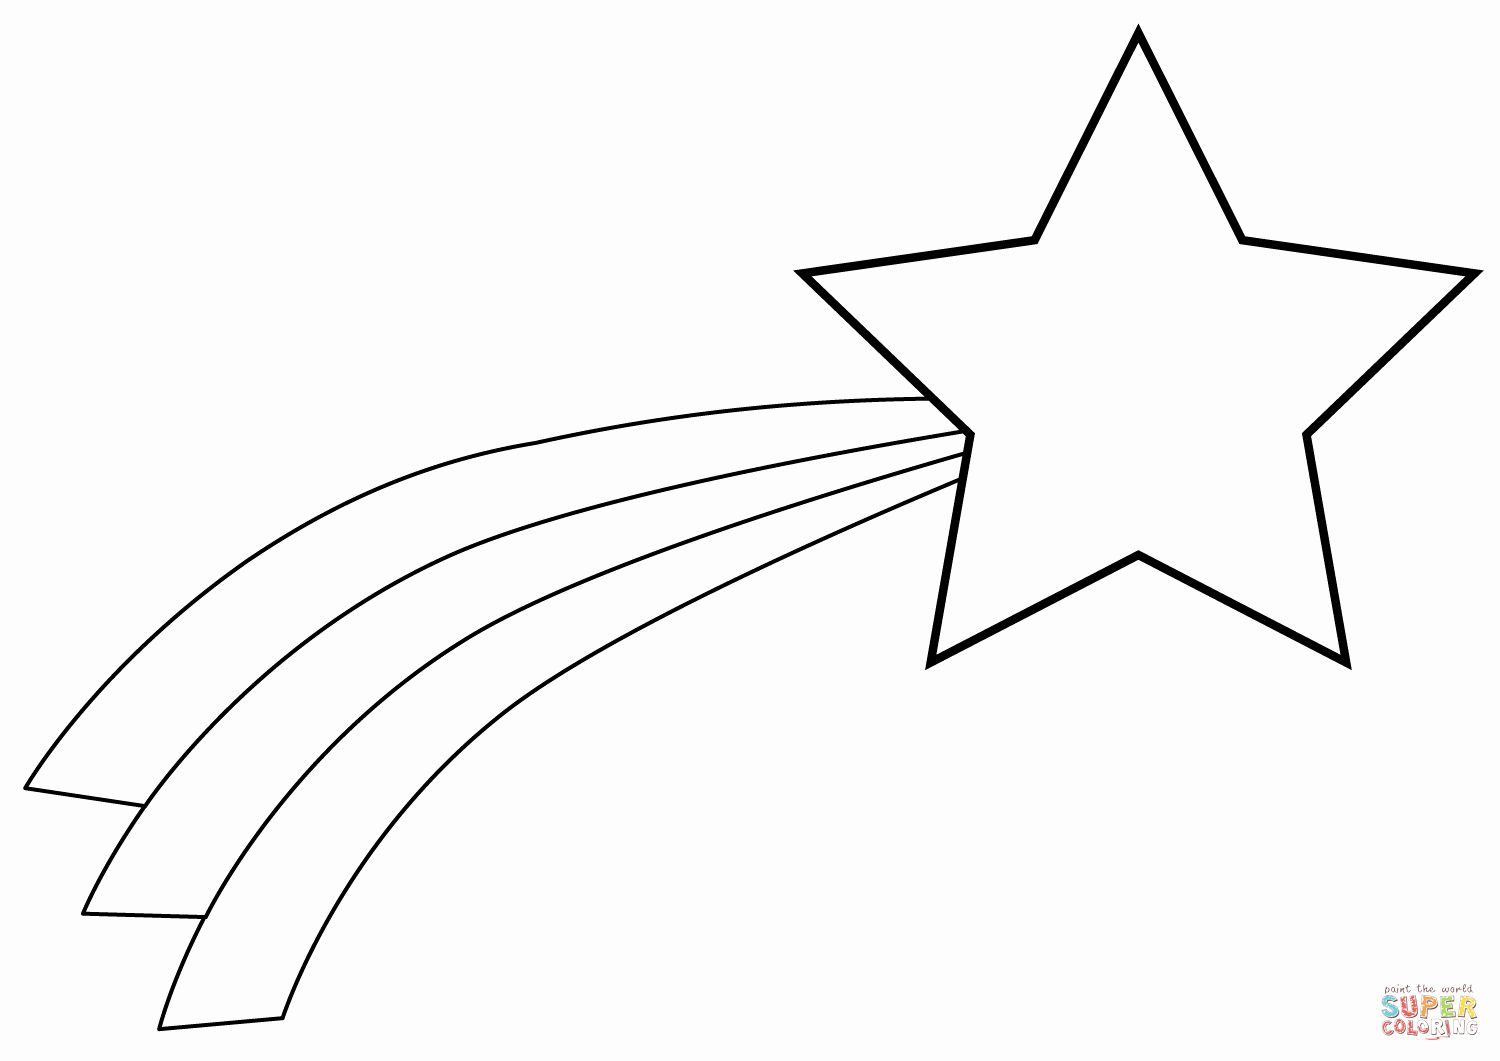 32 Shooting Star Coloring Page in 2020 | Star coloring ...